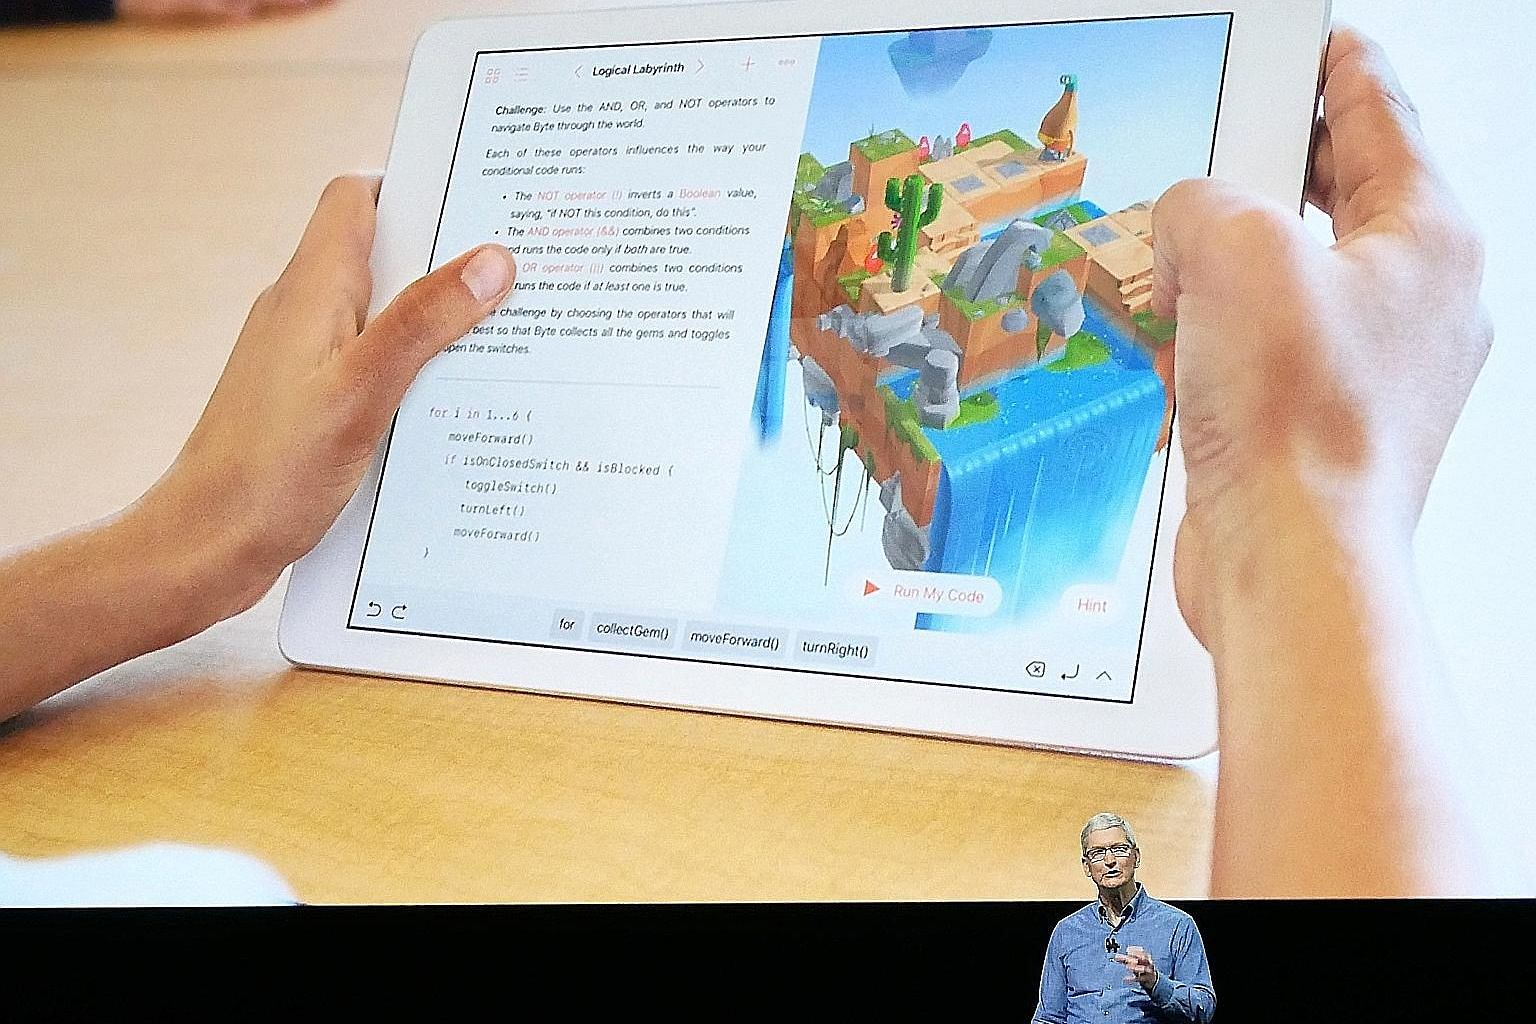 Apple chief executive Timothy Cook announcing Swift Playgrounds, an app that aims to teach coding to beginners and children, in June. The app was scheduled for release yesterday.